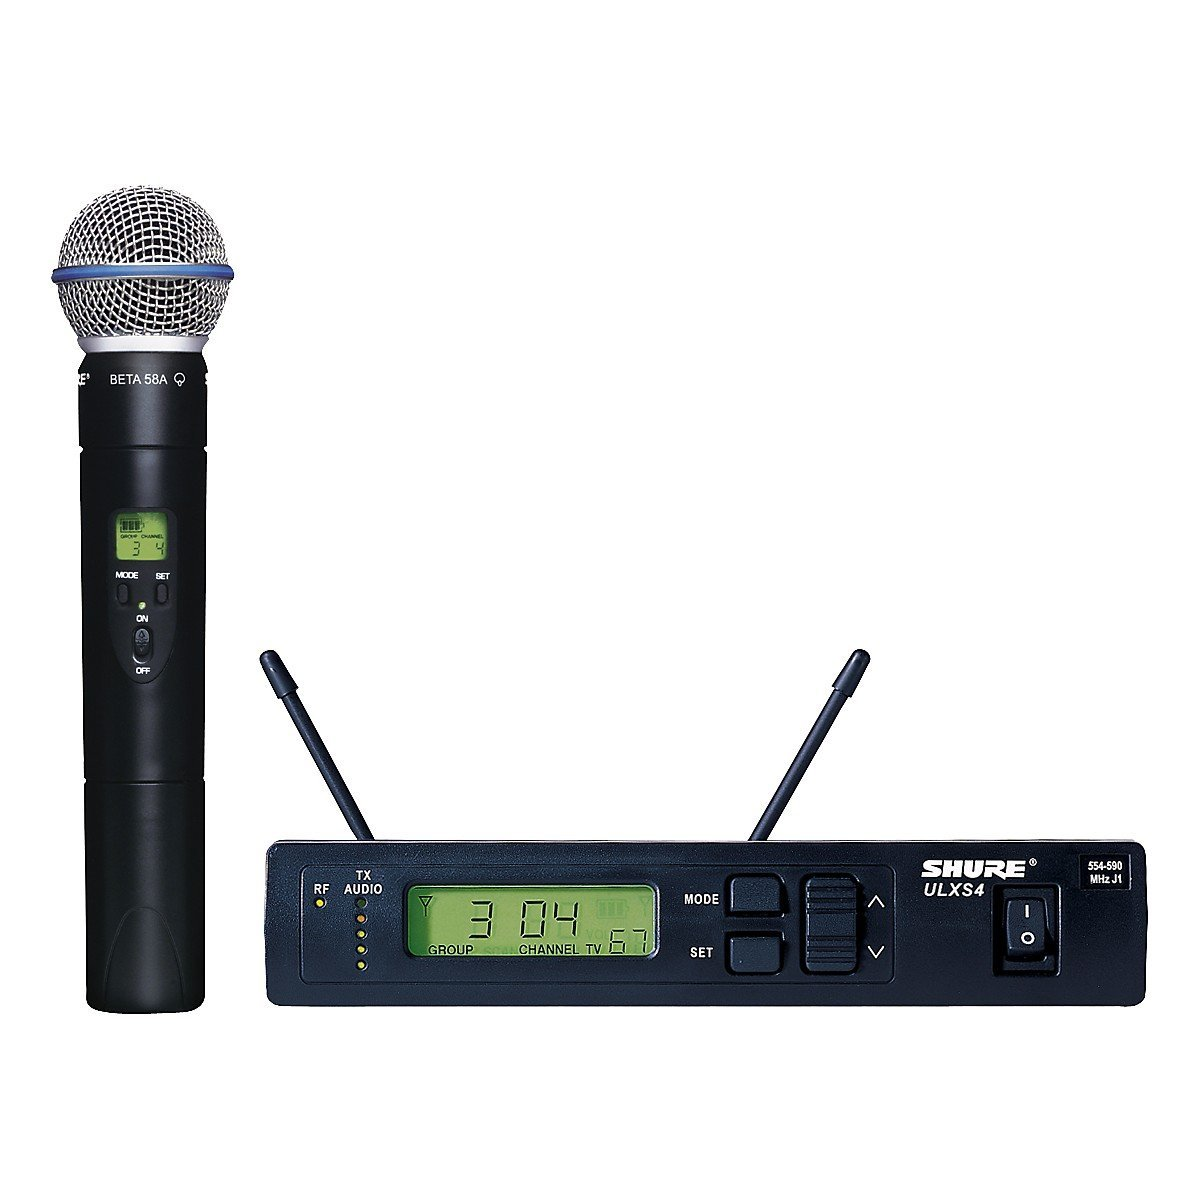 Shure ULXS24/BETA58 Handheld Wireless System